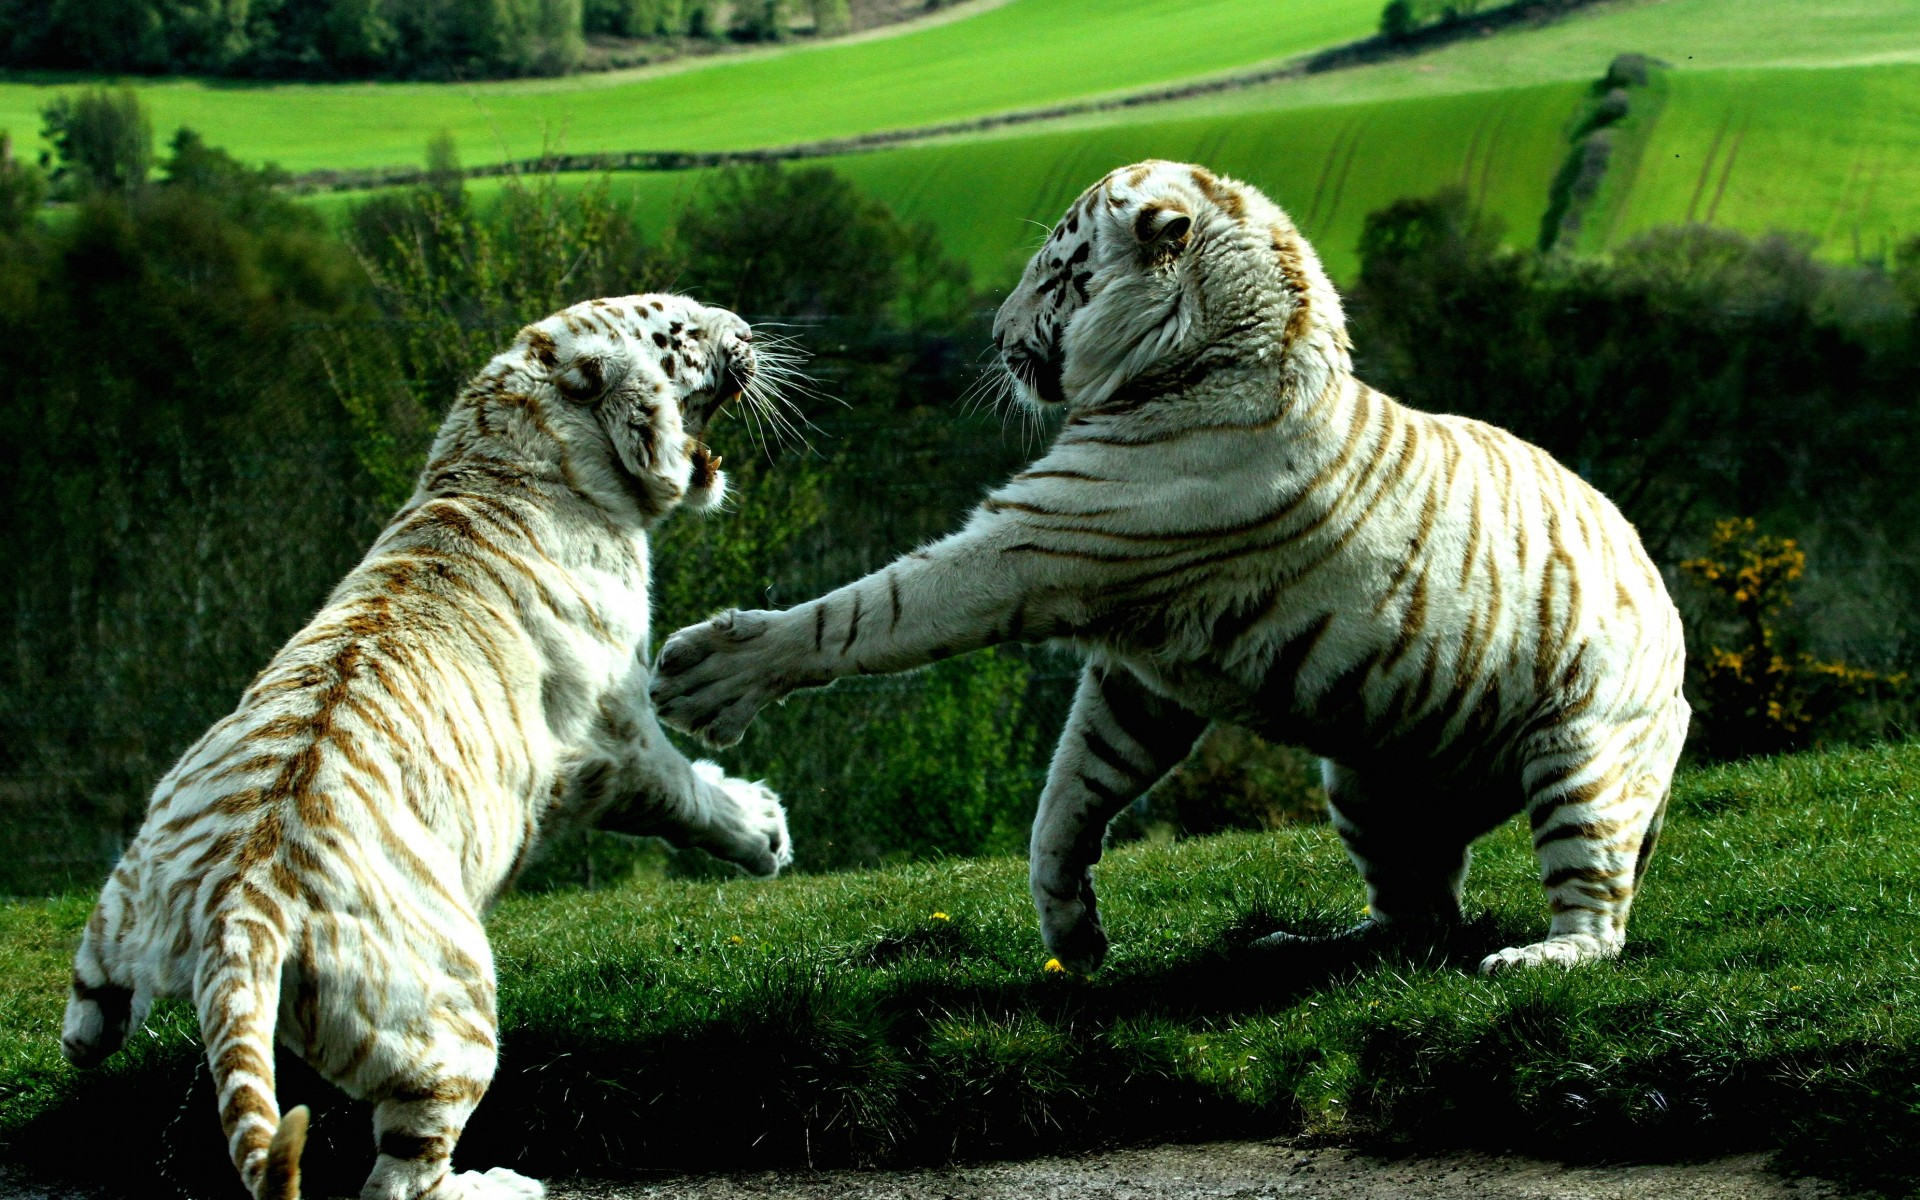 White Tigers Fighting Wallpaper for Desktop 1920x1200